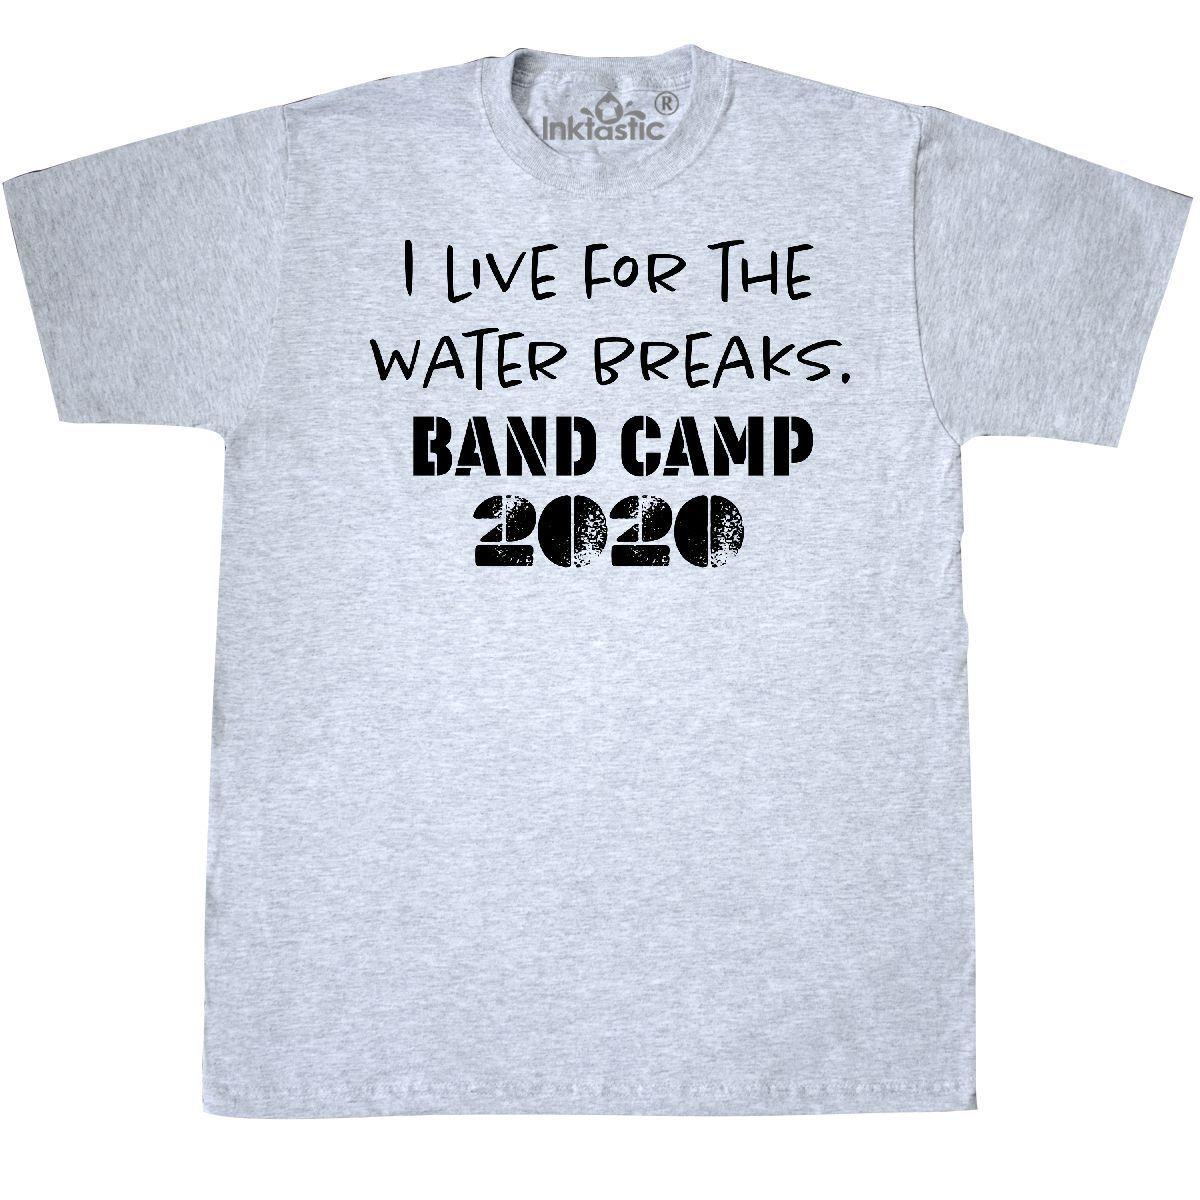 9962318f58 Inktastic I Live For The Water Breaks Band Camp 2020 T Shirt Music Band  Marching Cool Casual Pride T Tee Shirts Online Cool Tee Shirts From  Cls6688523, ...